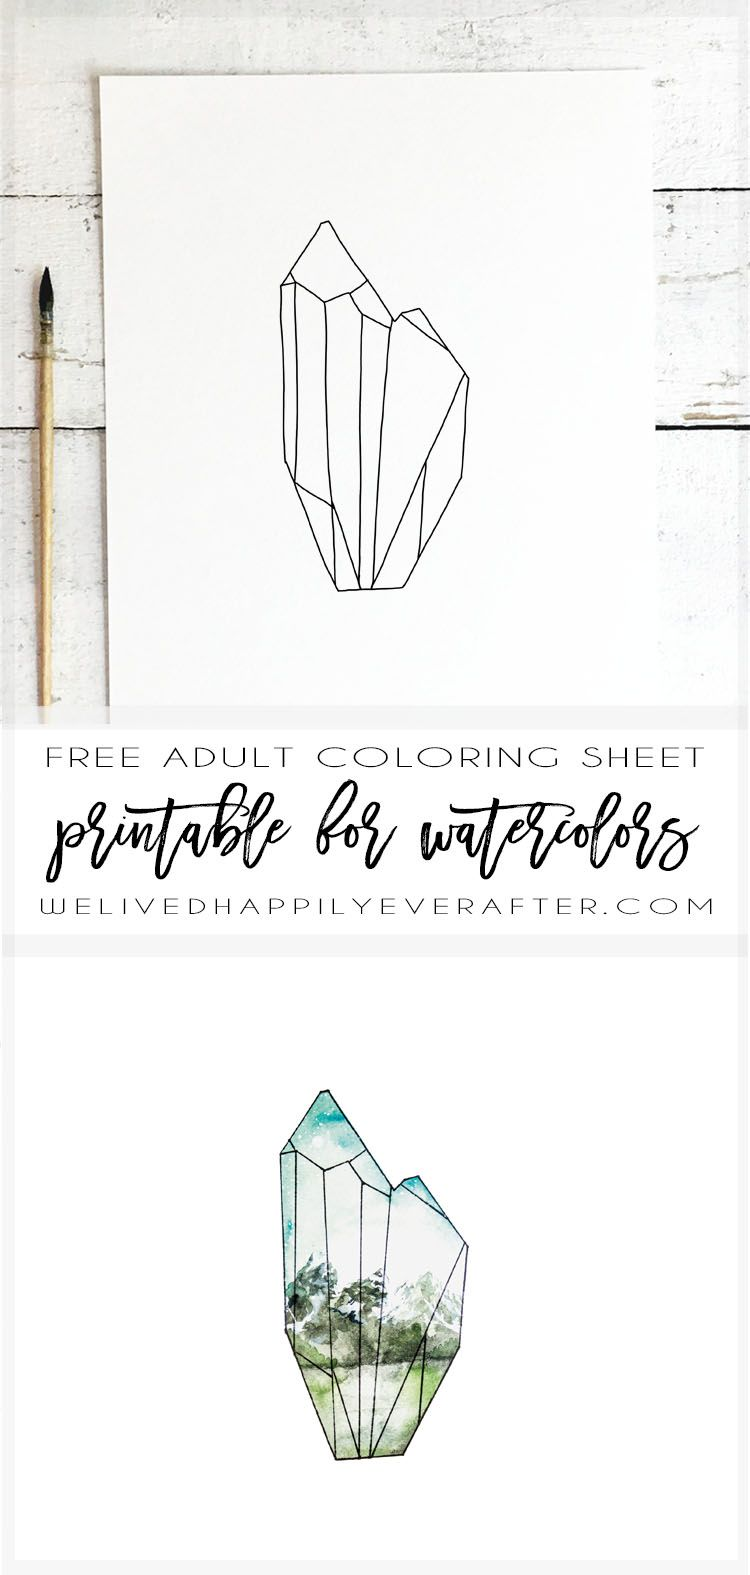 Fun Geometric Crystal Winter Snowy Mountain Free Coloring Sheet